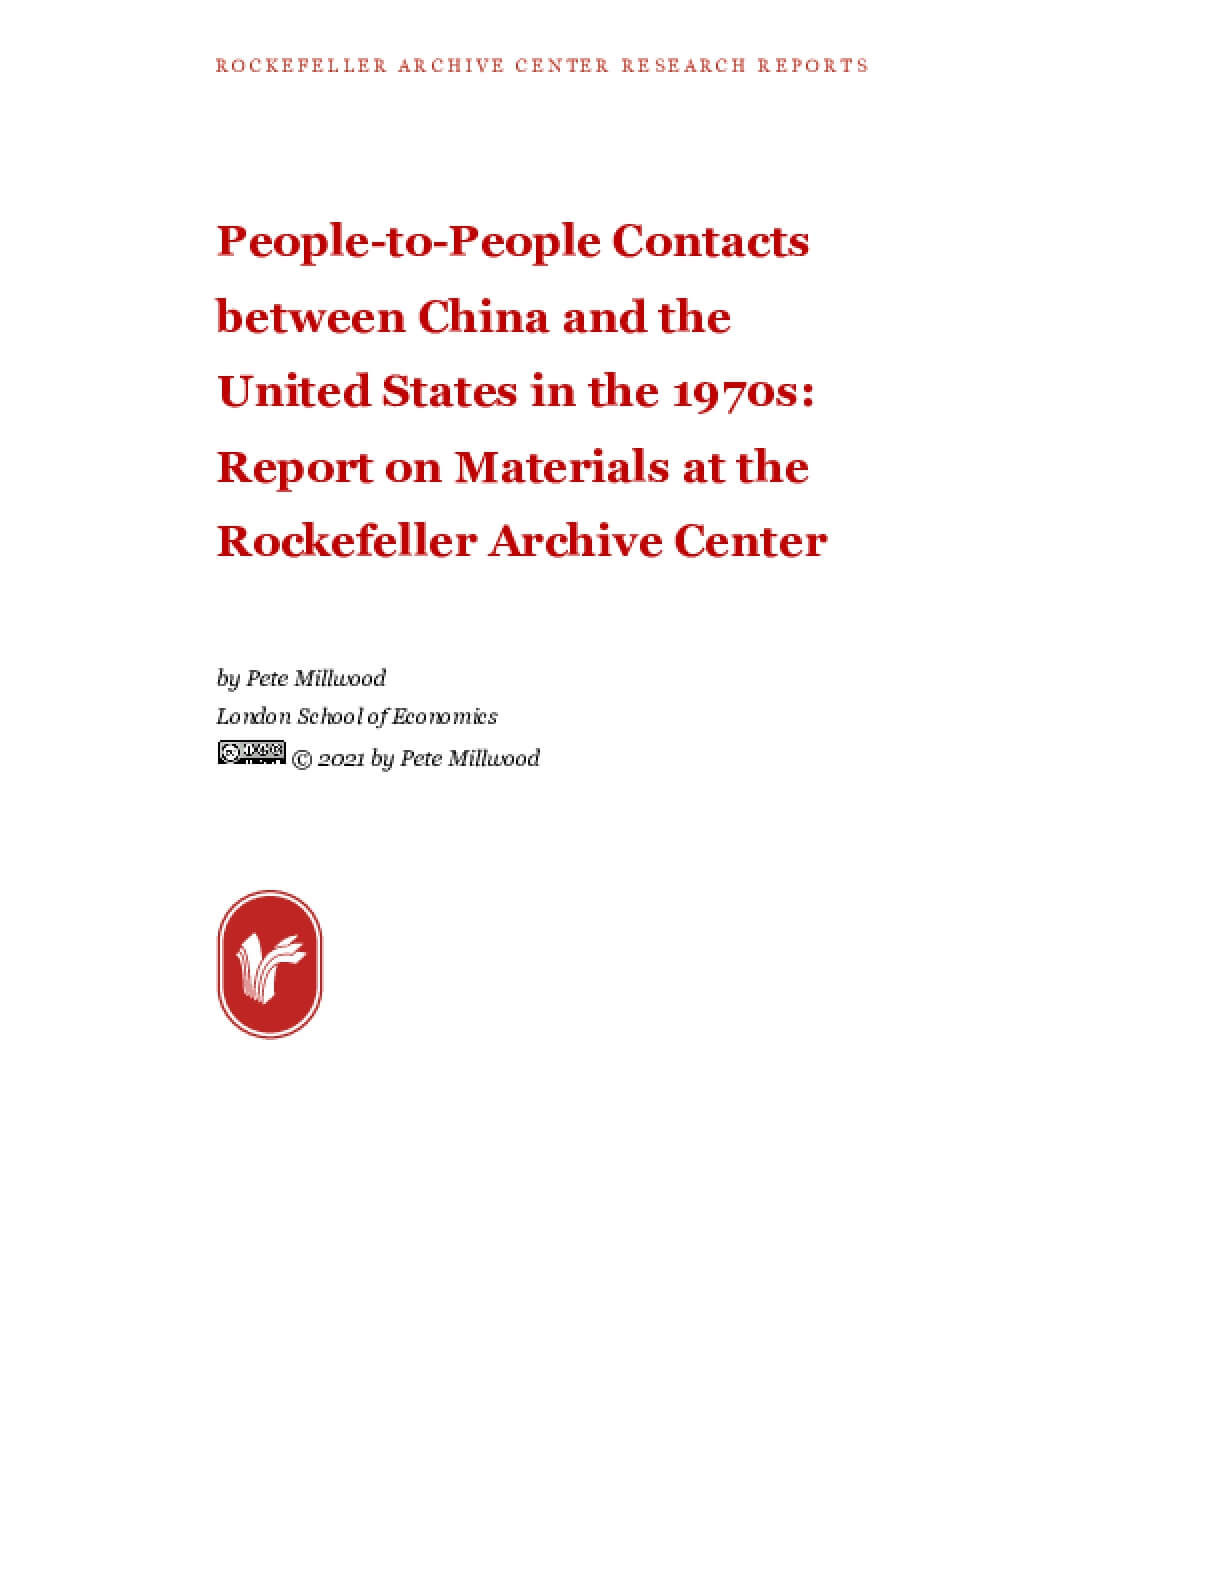 People-to-People Contacts between China and the United States in the 1970s: Report on Materials at the Rockefeller Archive Center